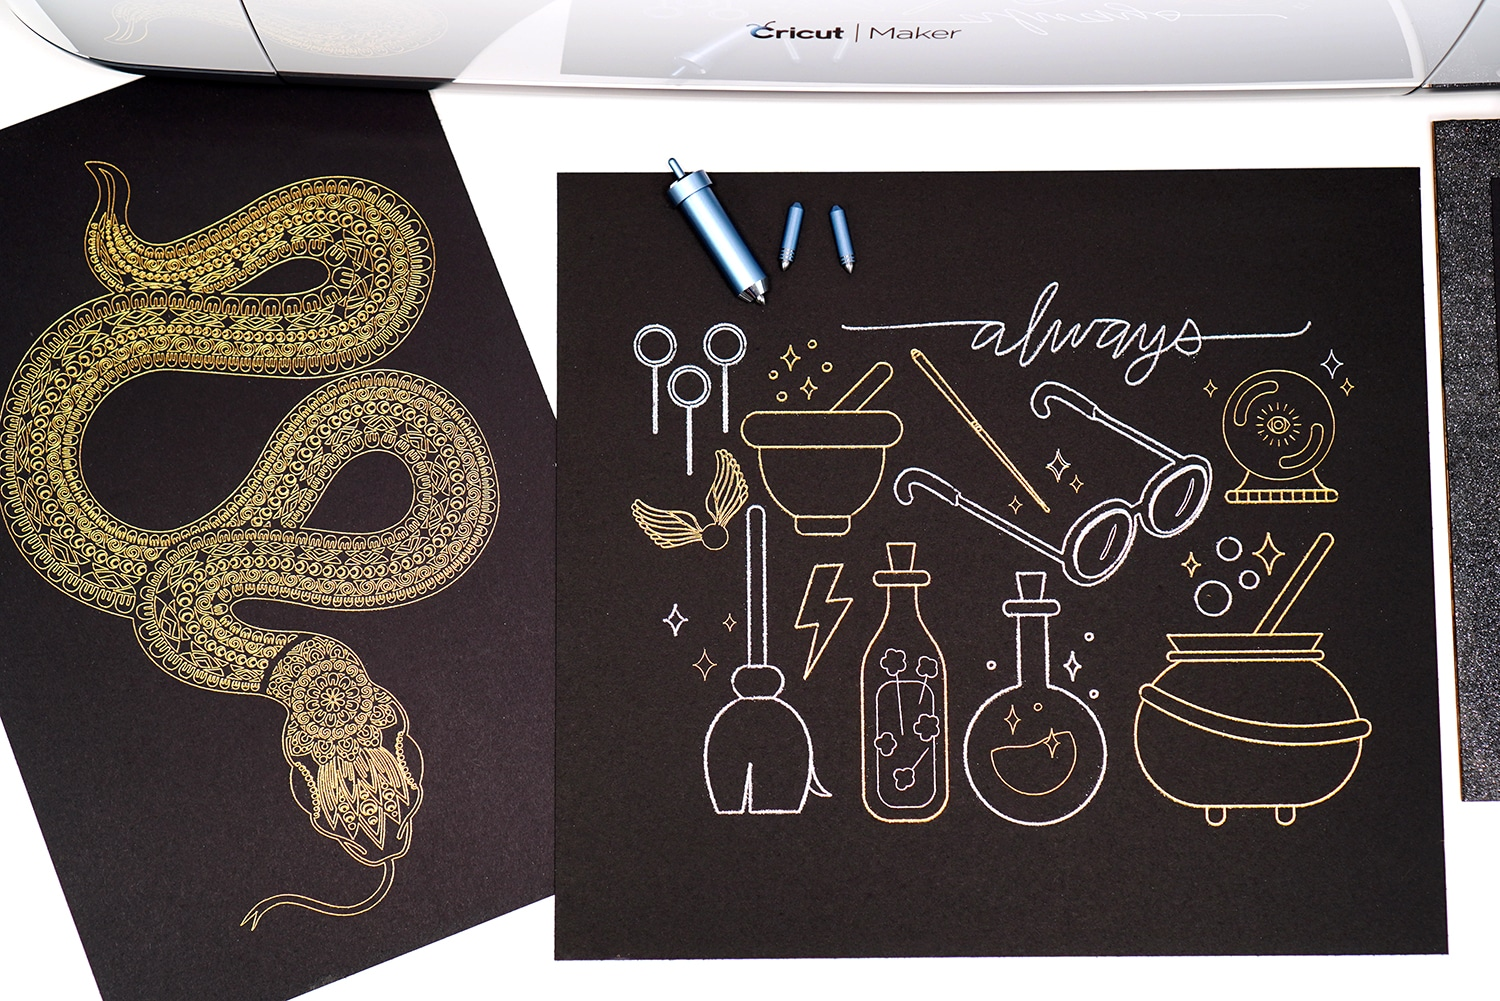 Cricut Maker machine with gold and silver foil art prints (snakes and wizardry) with Cricut Foil Transfer Tool and Tips